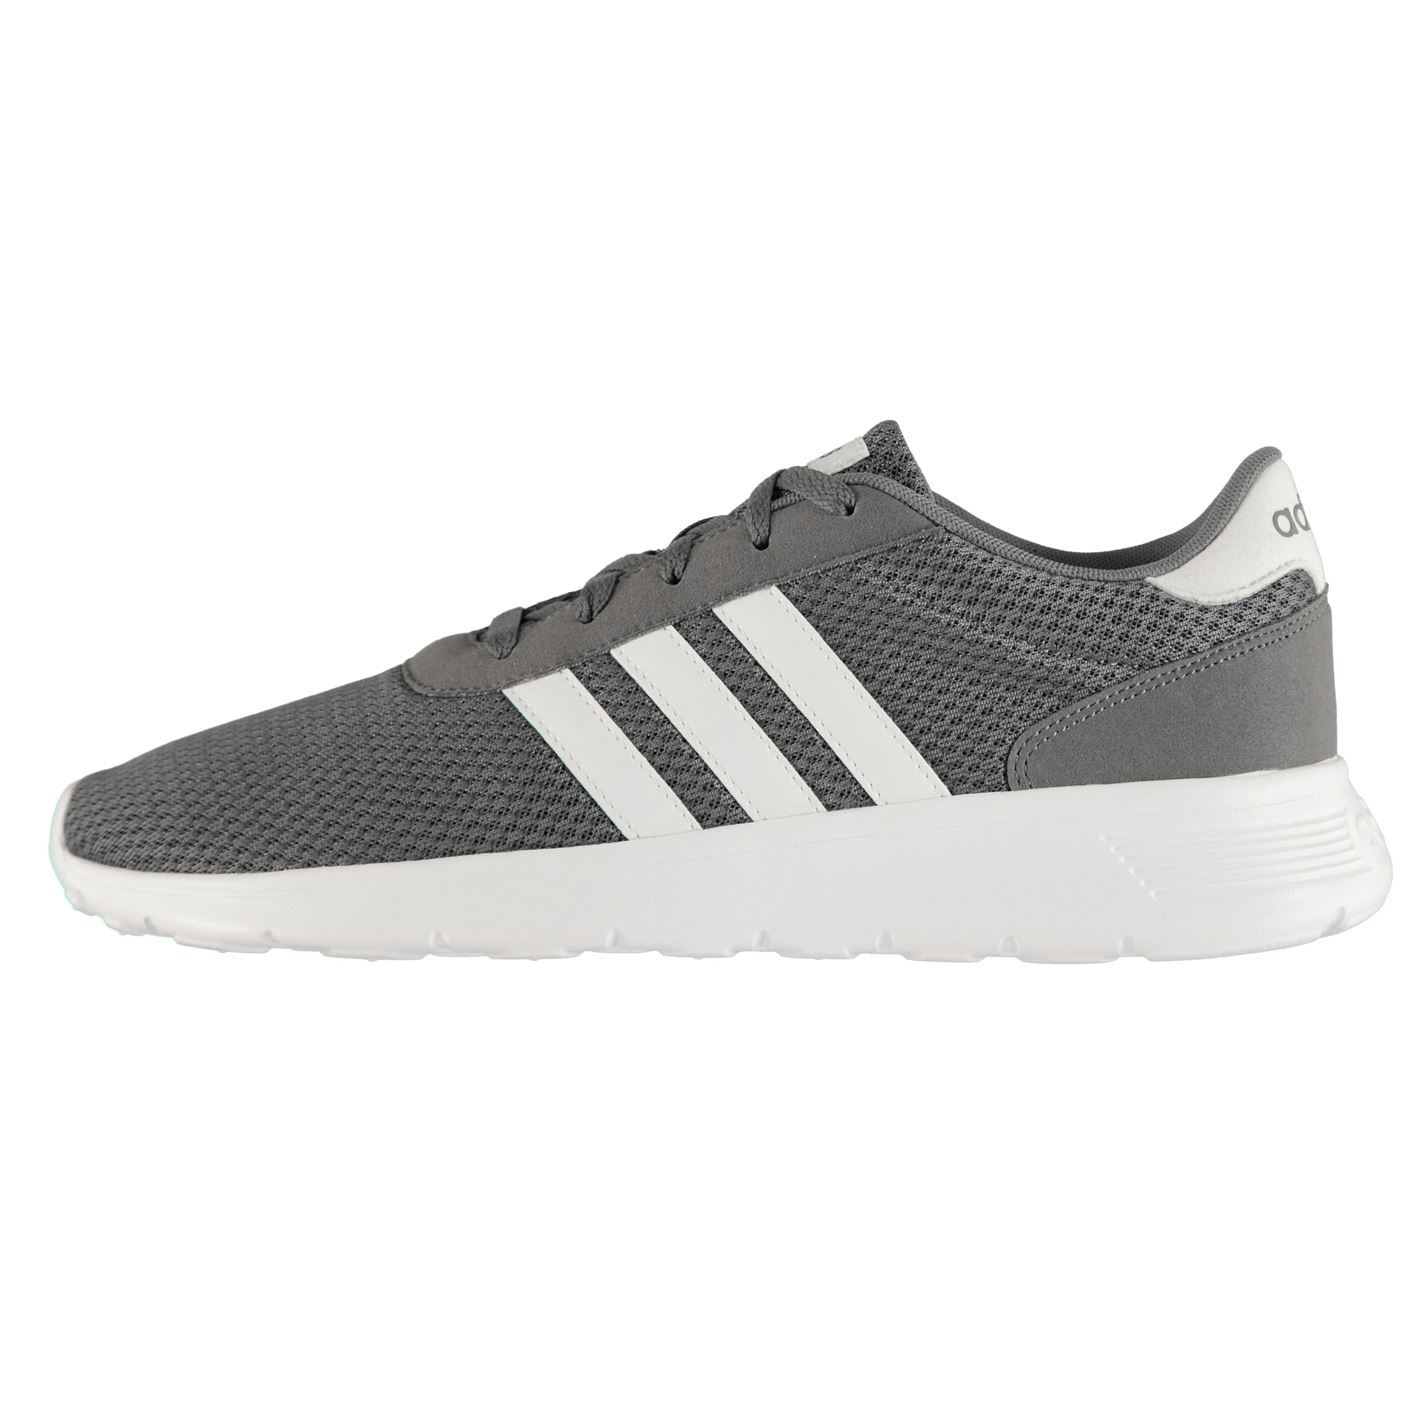 finest selection 100% top quality watch Details about adidas Lite Racer Trainers Mens Athleisure Footwear Shoes  Sneakers